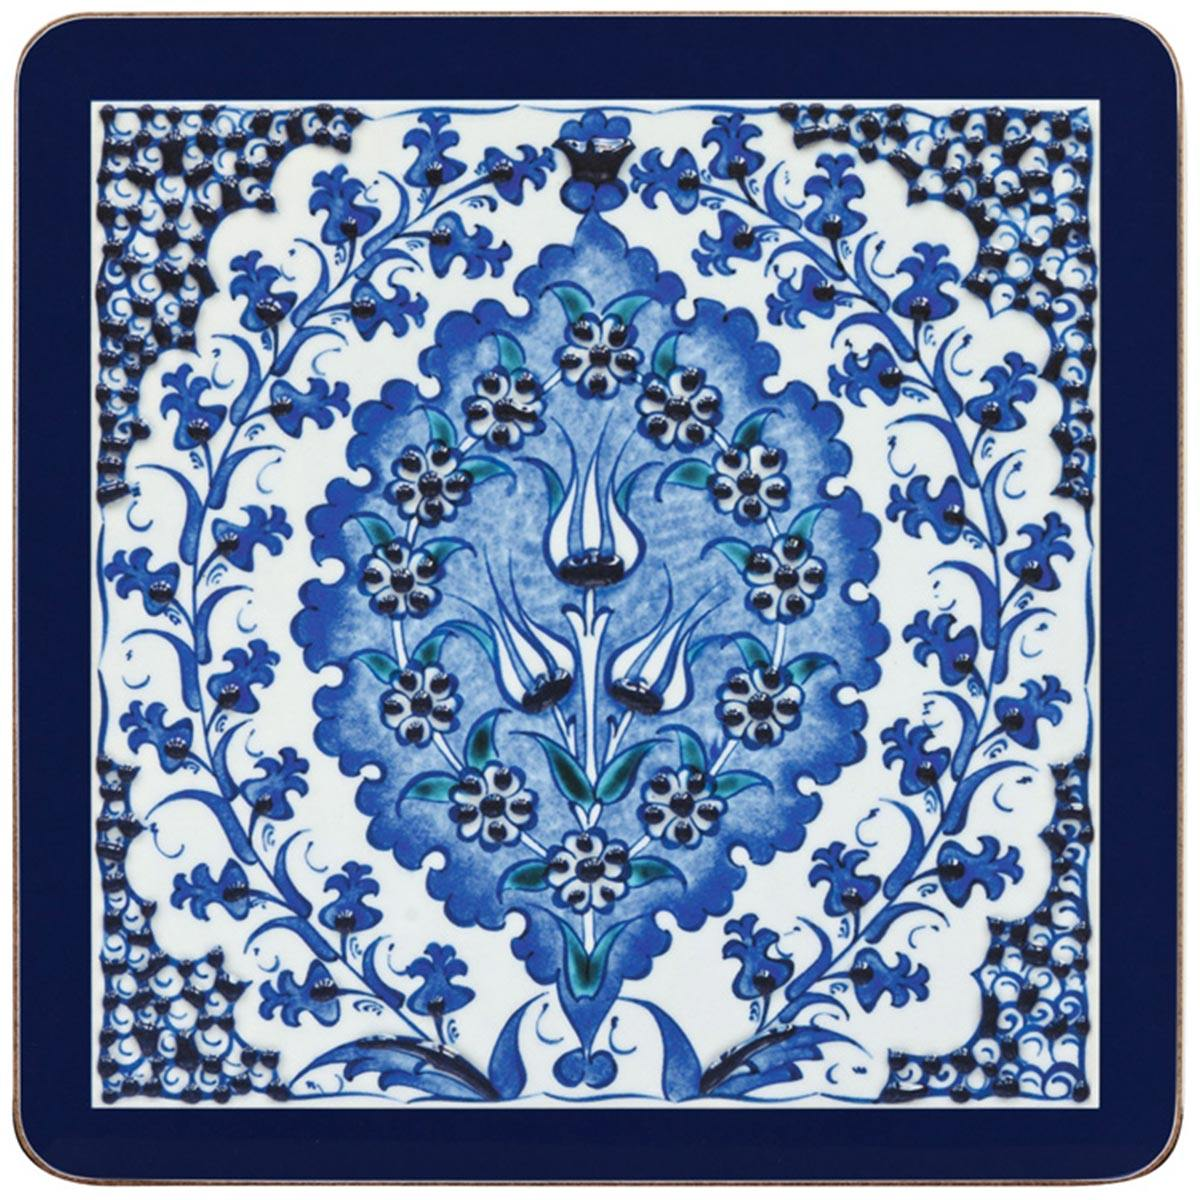 Iznik Bluebell Table Mats - club matters